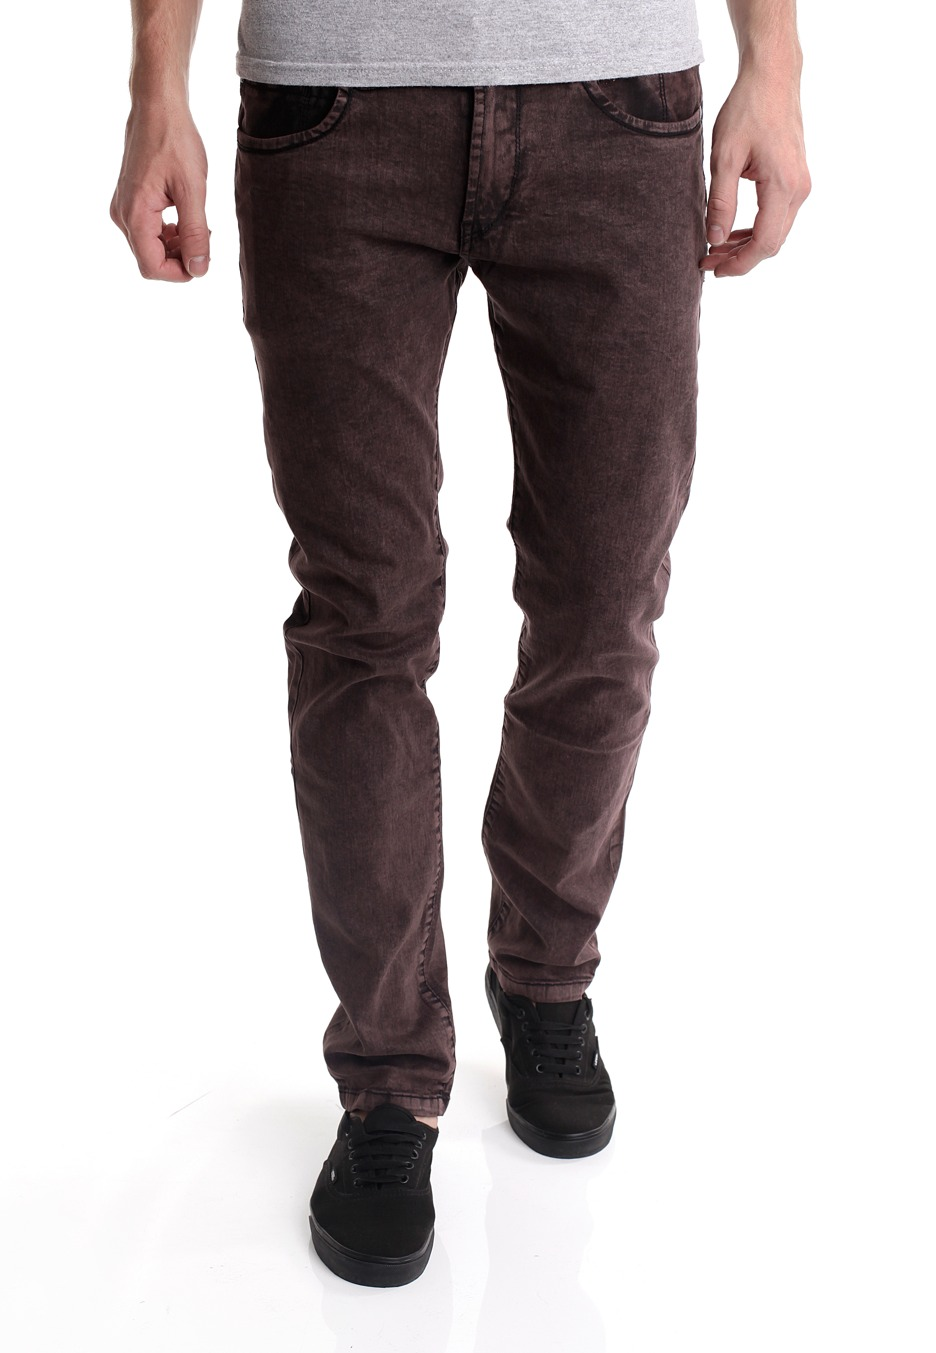 REELL - Rocket Colored Brown - Jeans - Impericon.com Worldwide